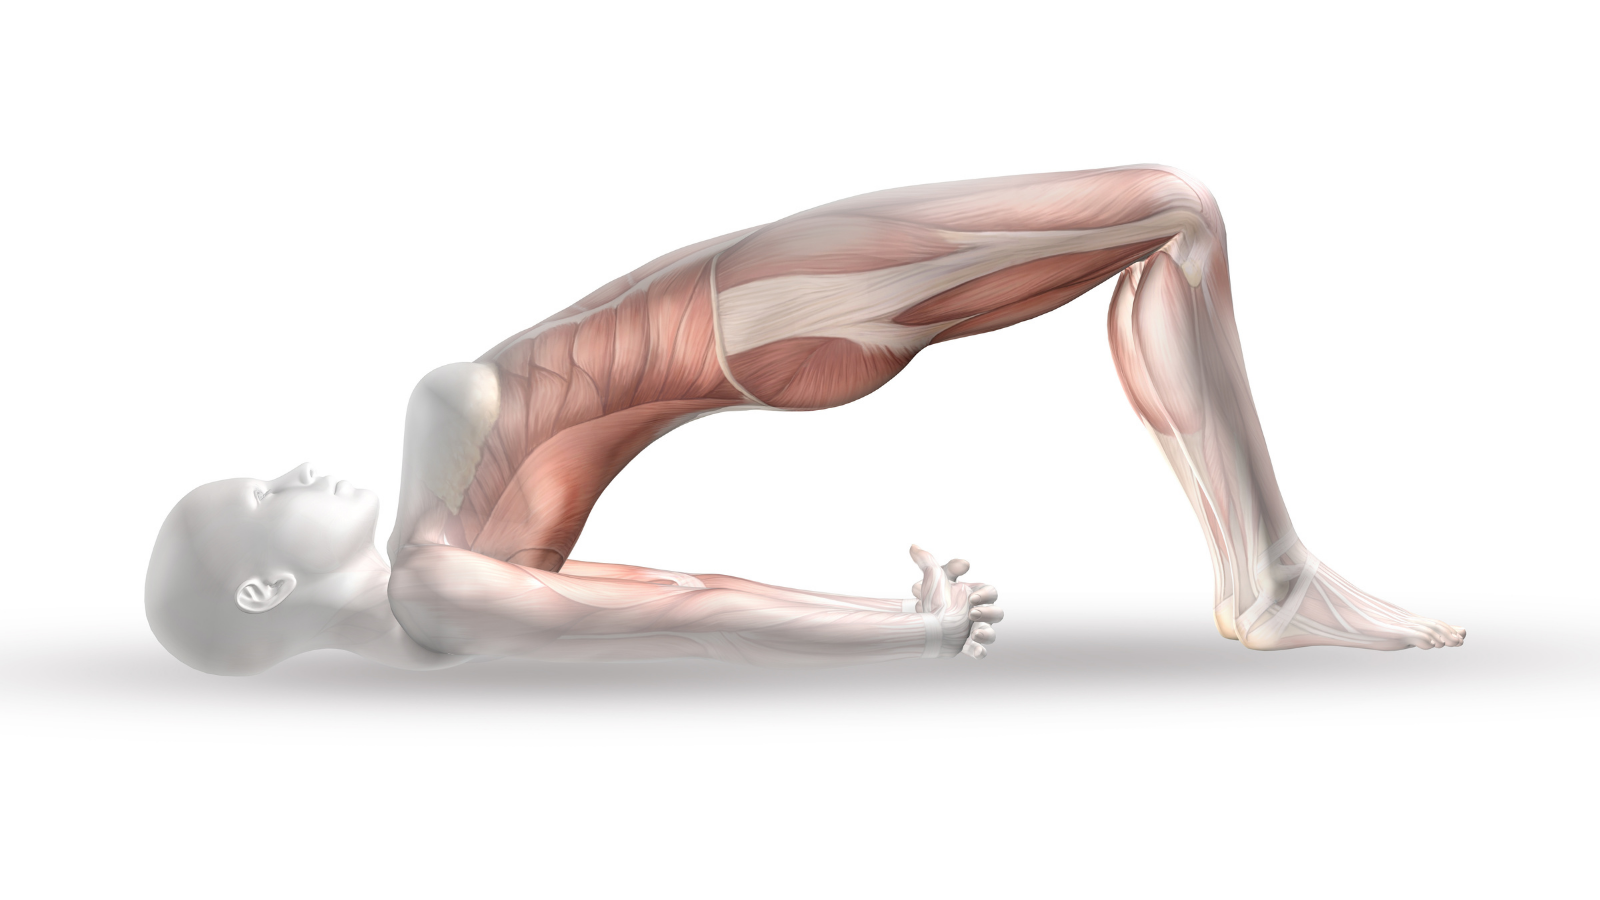 How to make learning yoga anatomy easy in ten key steps